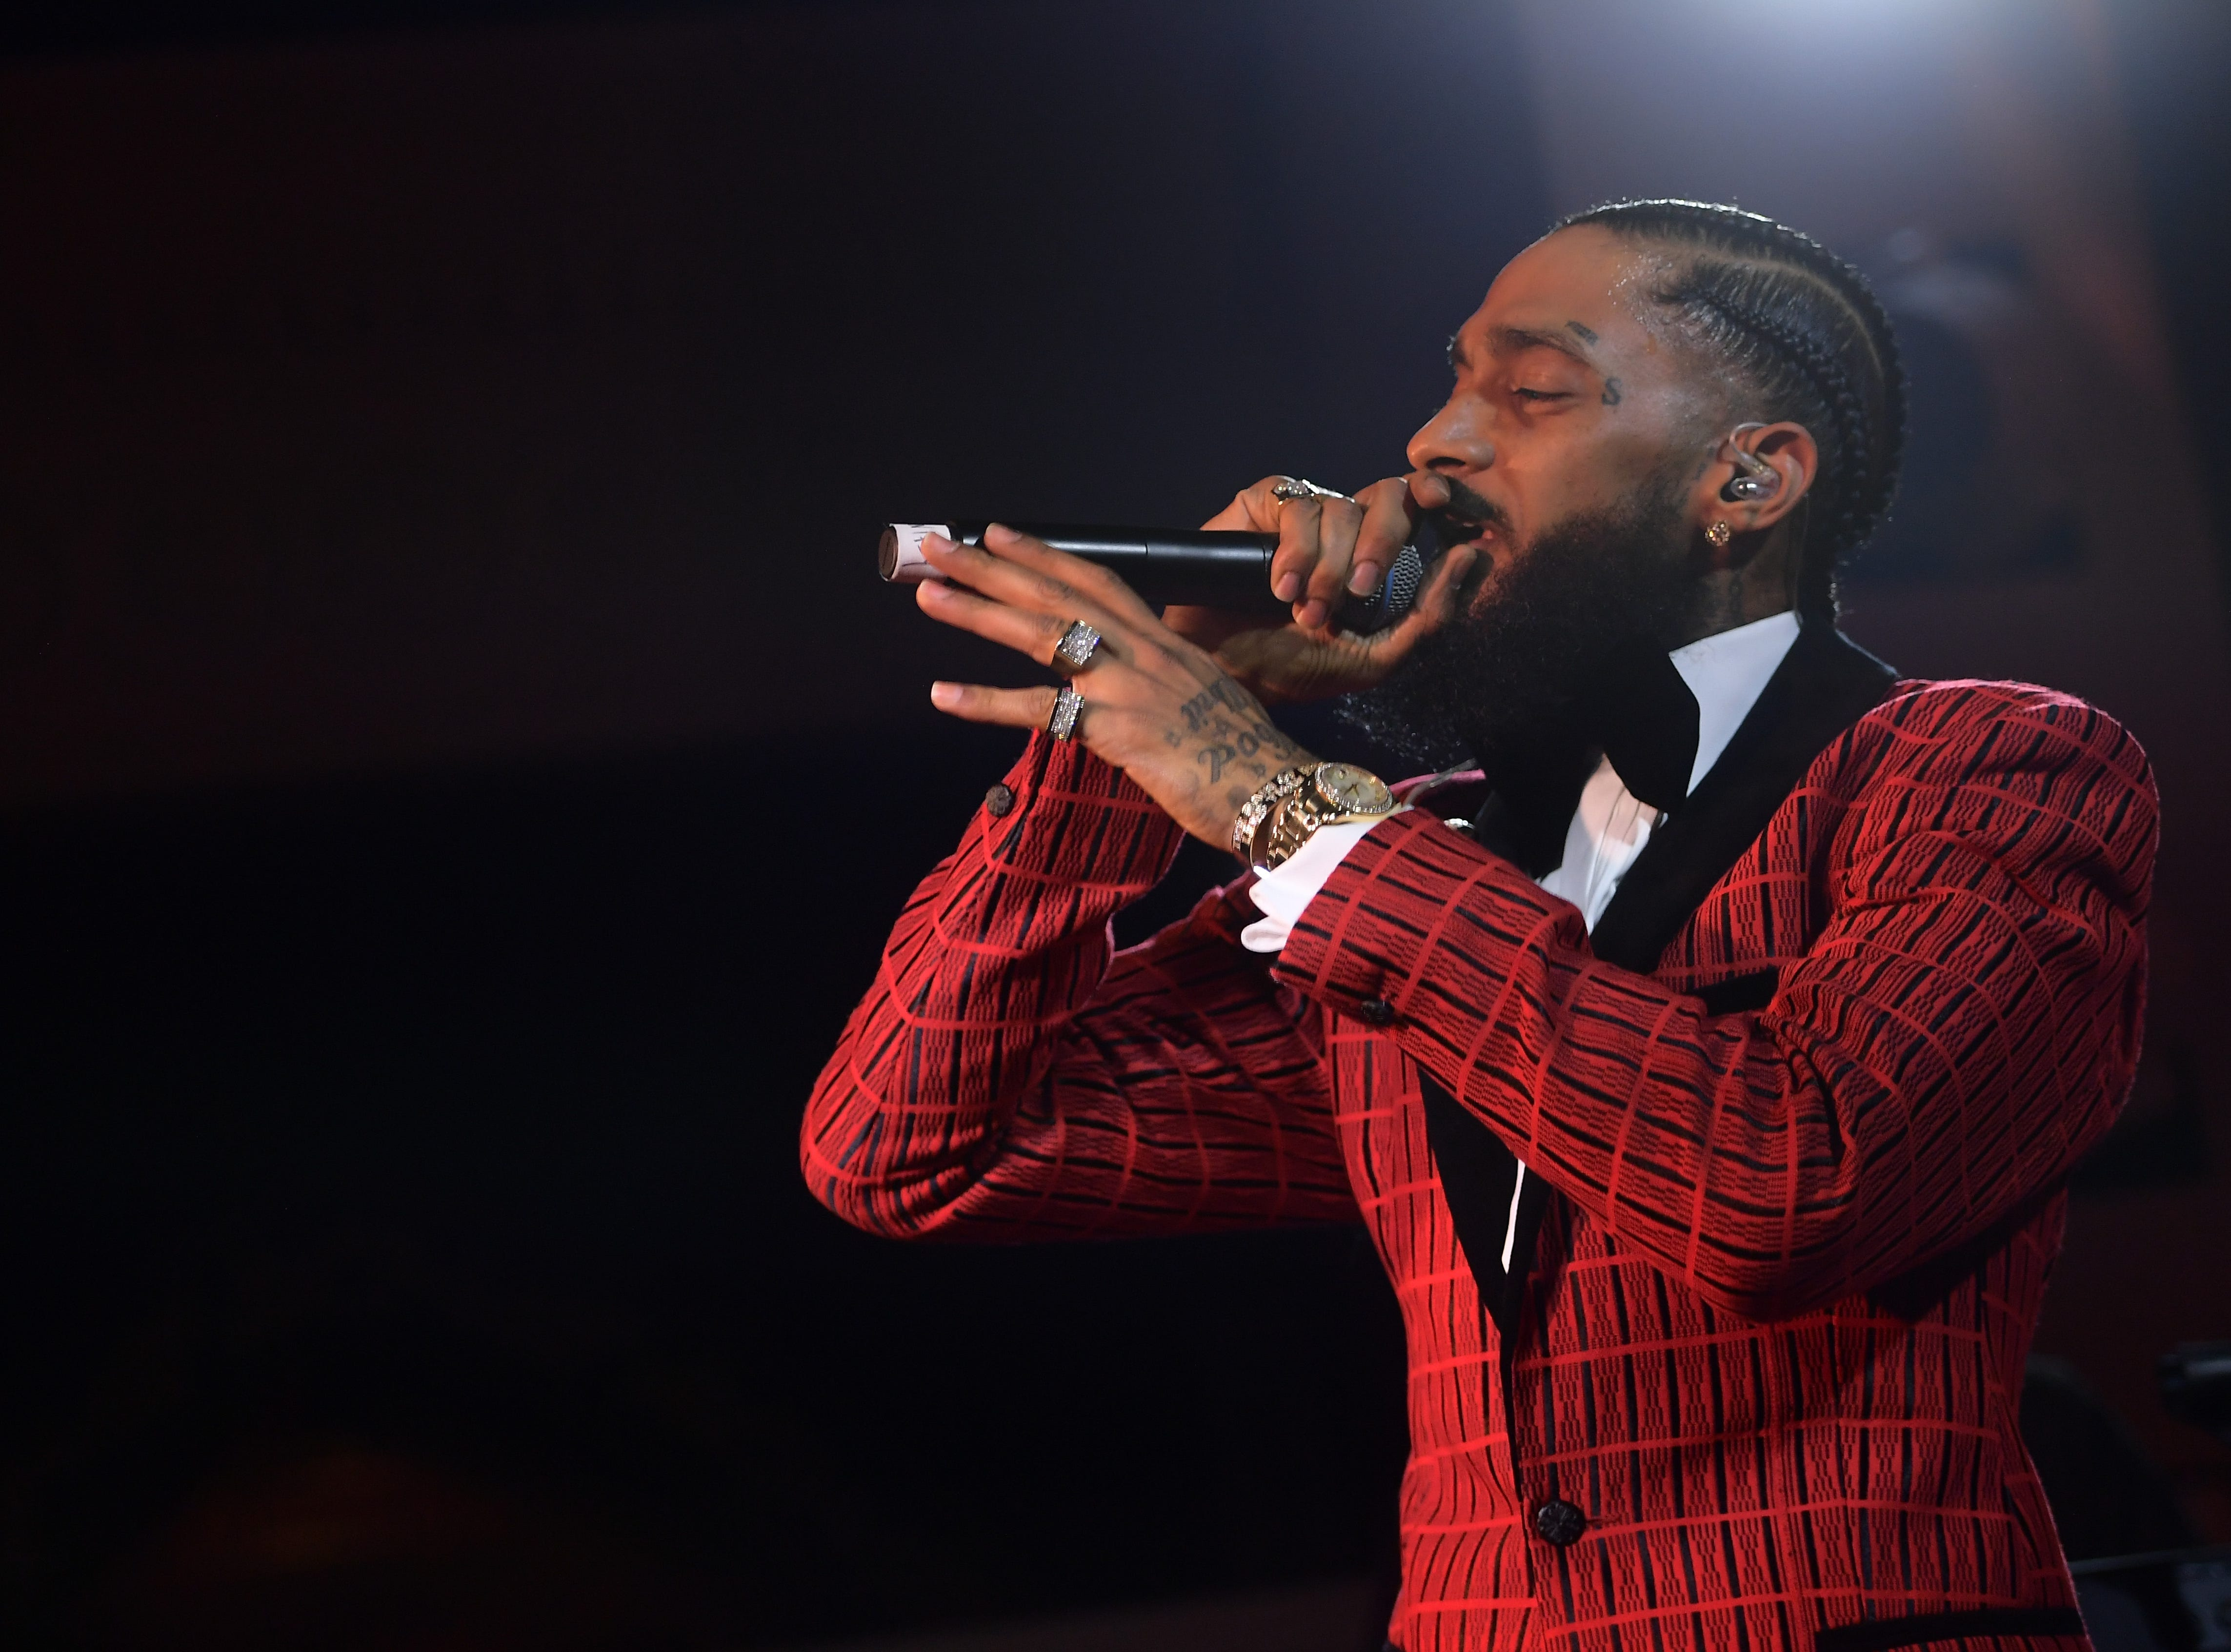 Nipsey Hussle performs onstage at the Warner Music Pre-Grammy Party at the NoMad Hotel on Feb. 7, 2019, in Los Angeles.